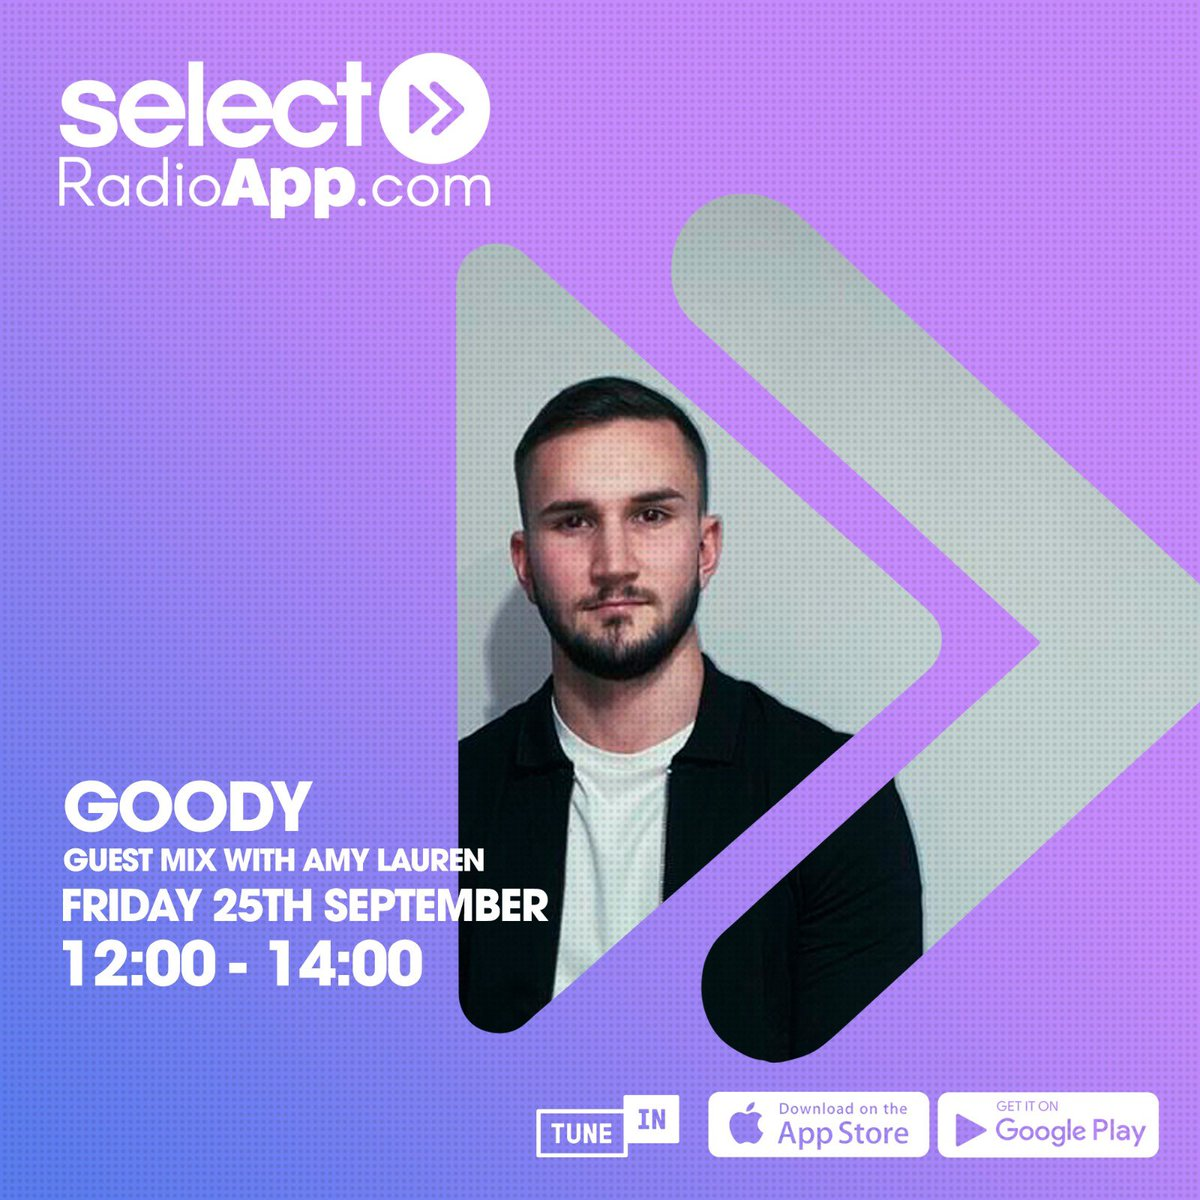 #np @clooneeuk - Gucci Suit in @OfficialGoody #GuestMix on #TheDanceShow on @SelectRadioApp https://t.co/46DHrCFiqb